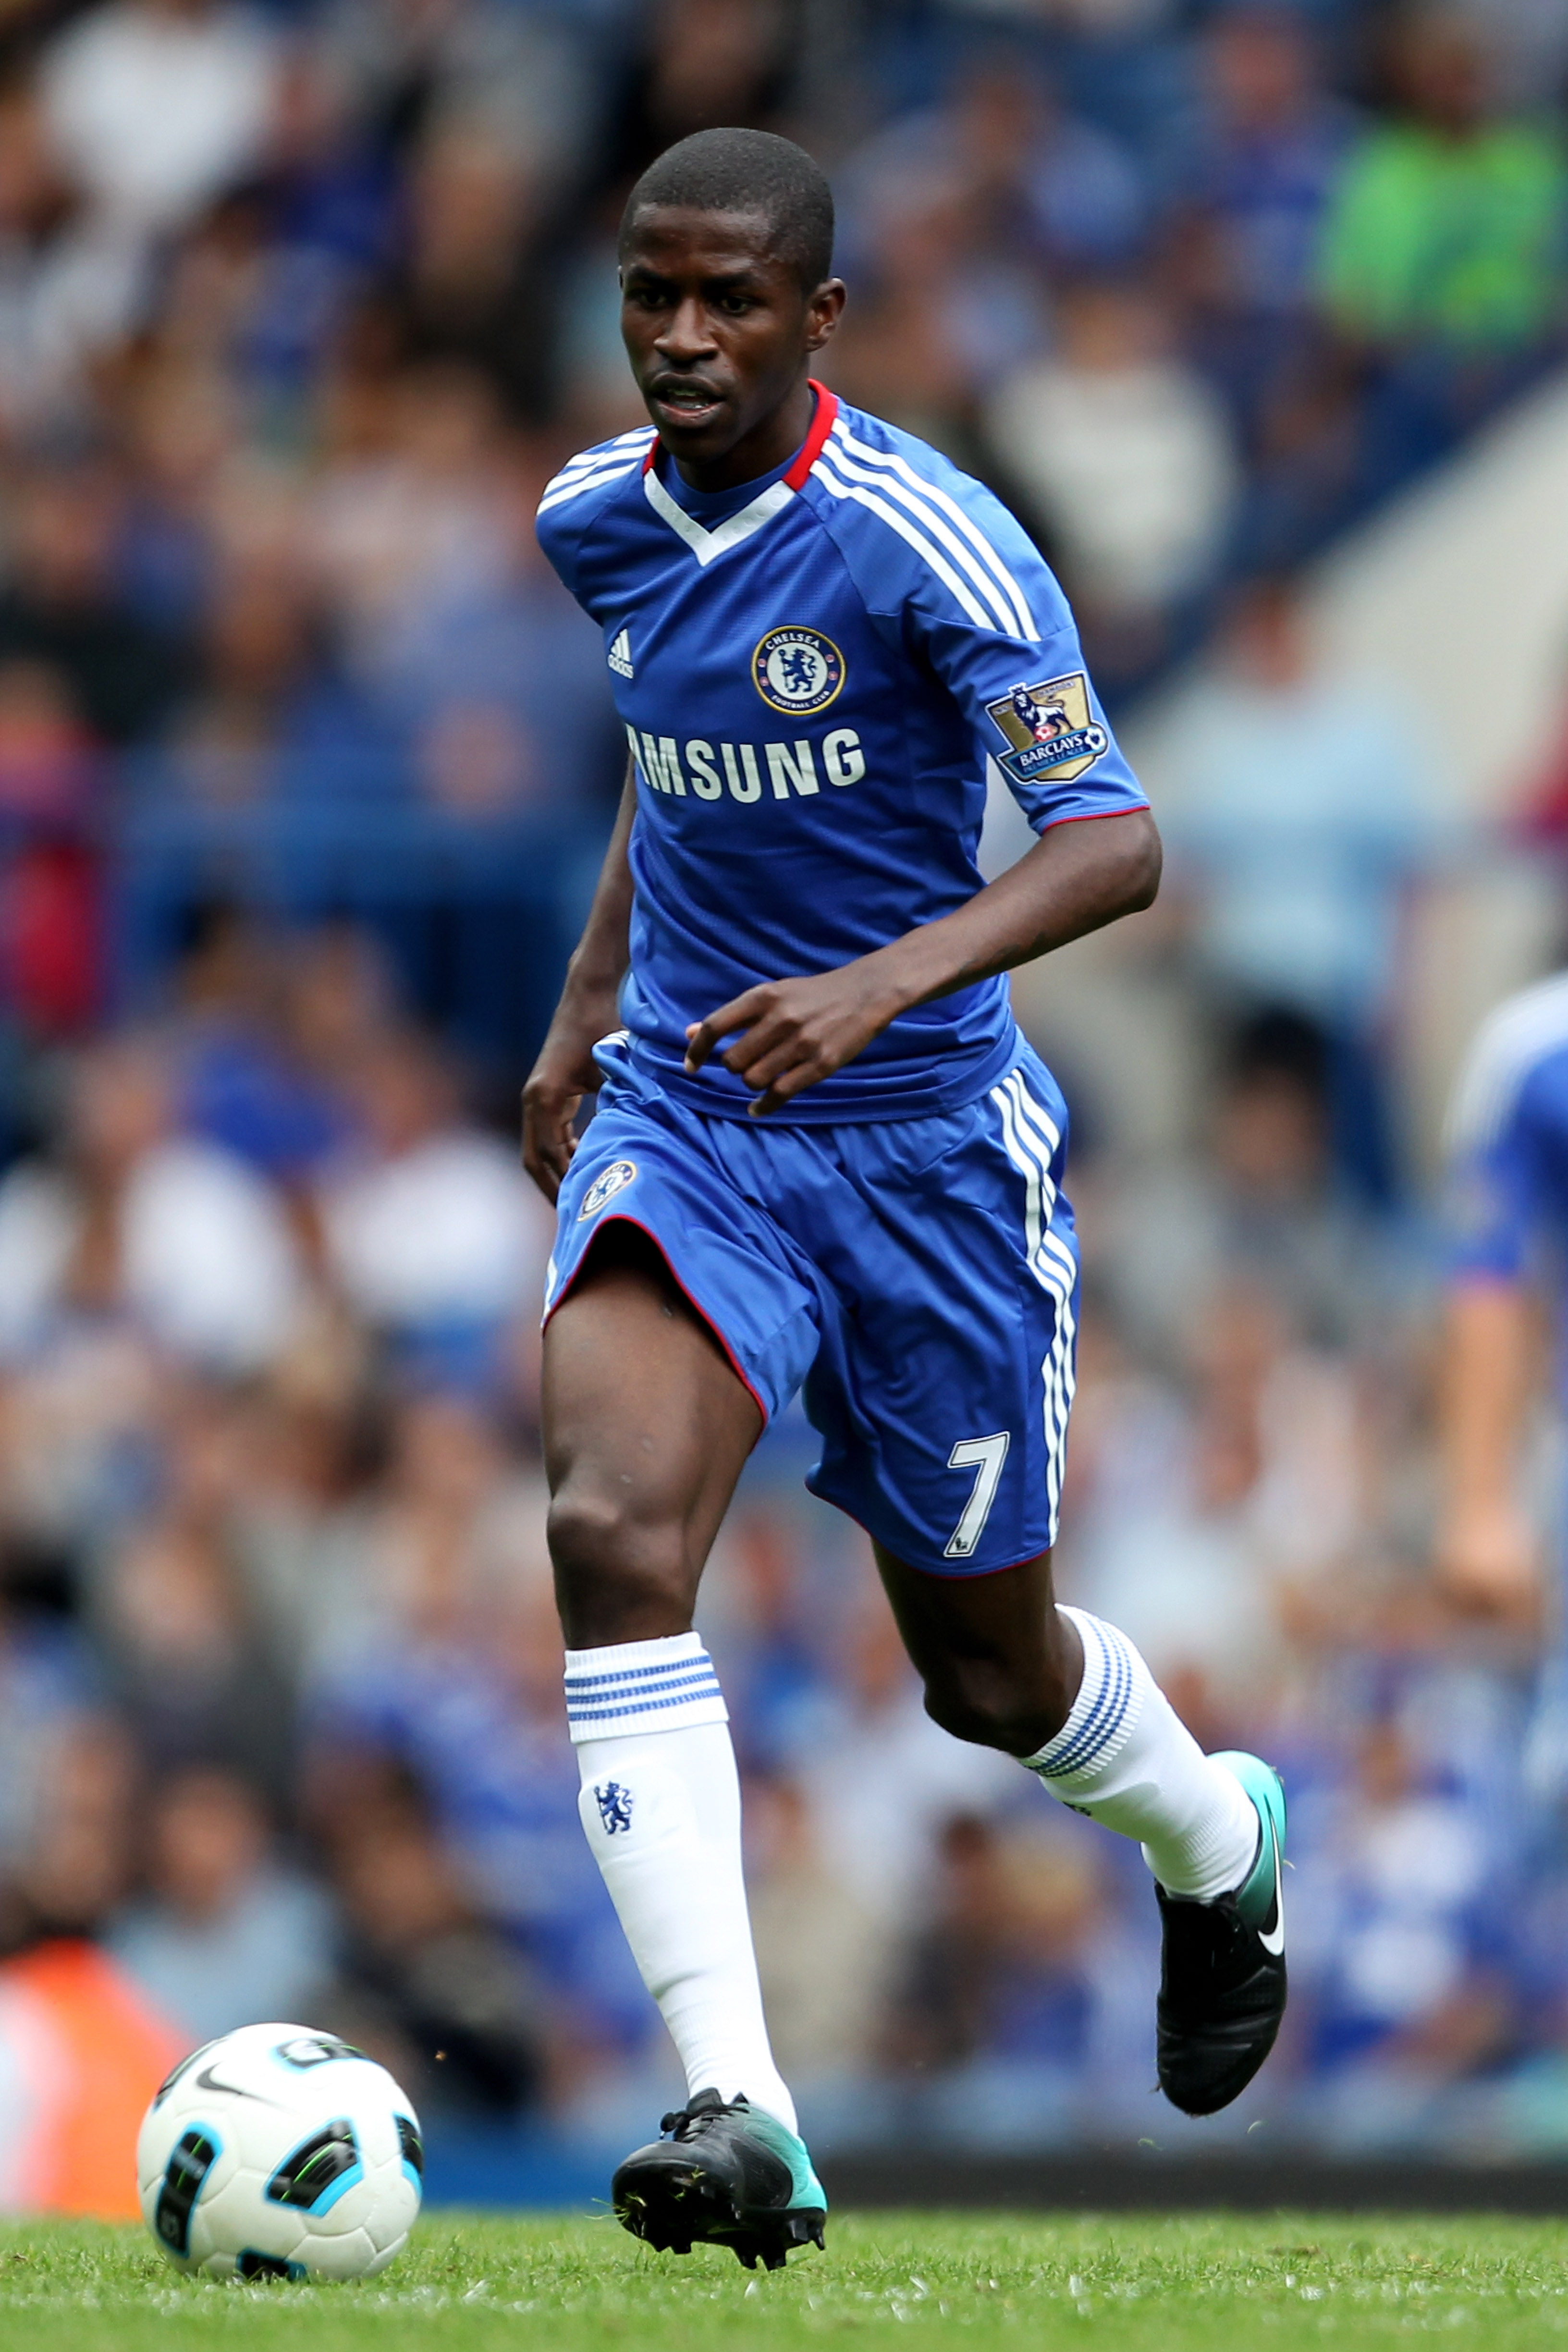 LONDON, ENGLAND - AUGUST 28:  Ramires of Chelsea makes his home debut during the Barclays Premier League match between Chelsea and Stoke City at Stamford Bridge on August 28, 2010 in London, England.  (Photo by Bryn Lennon/Getty Images)